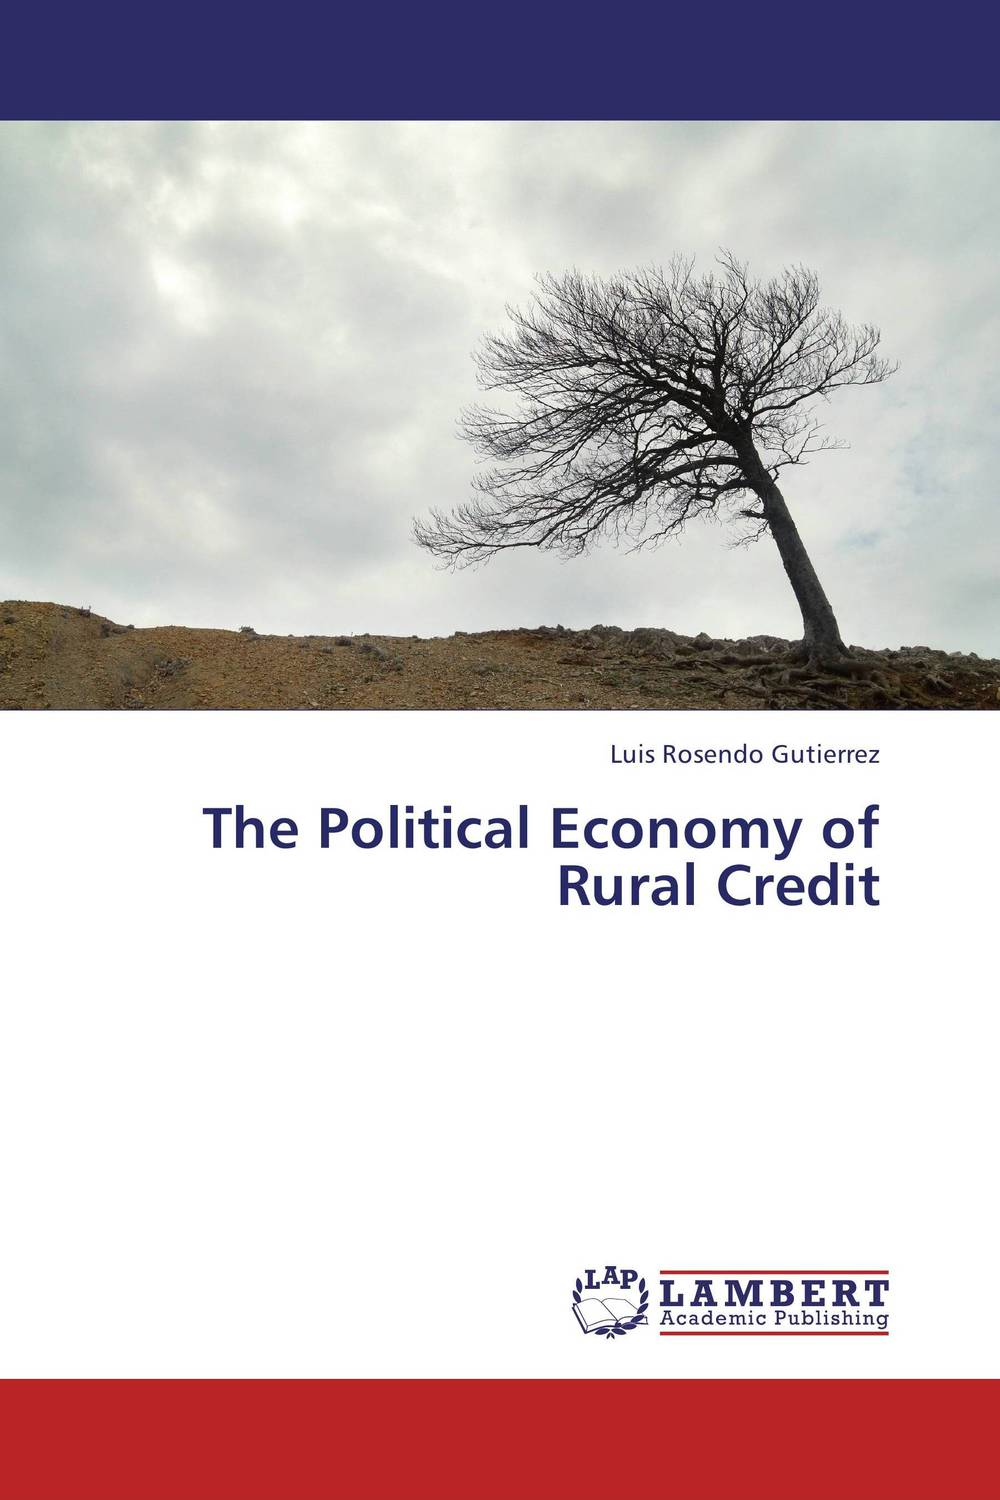 The Political Economy of Rural Credit